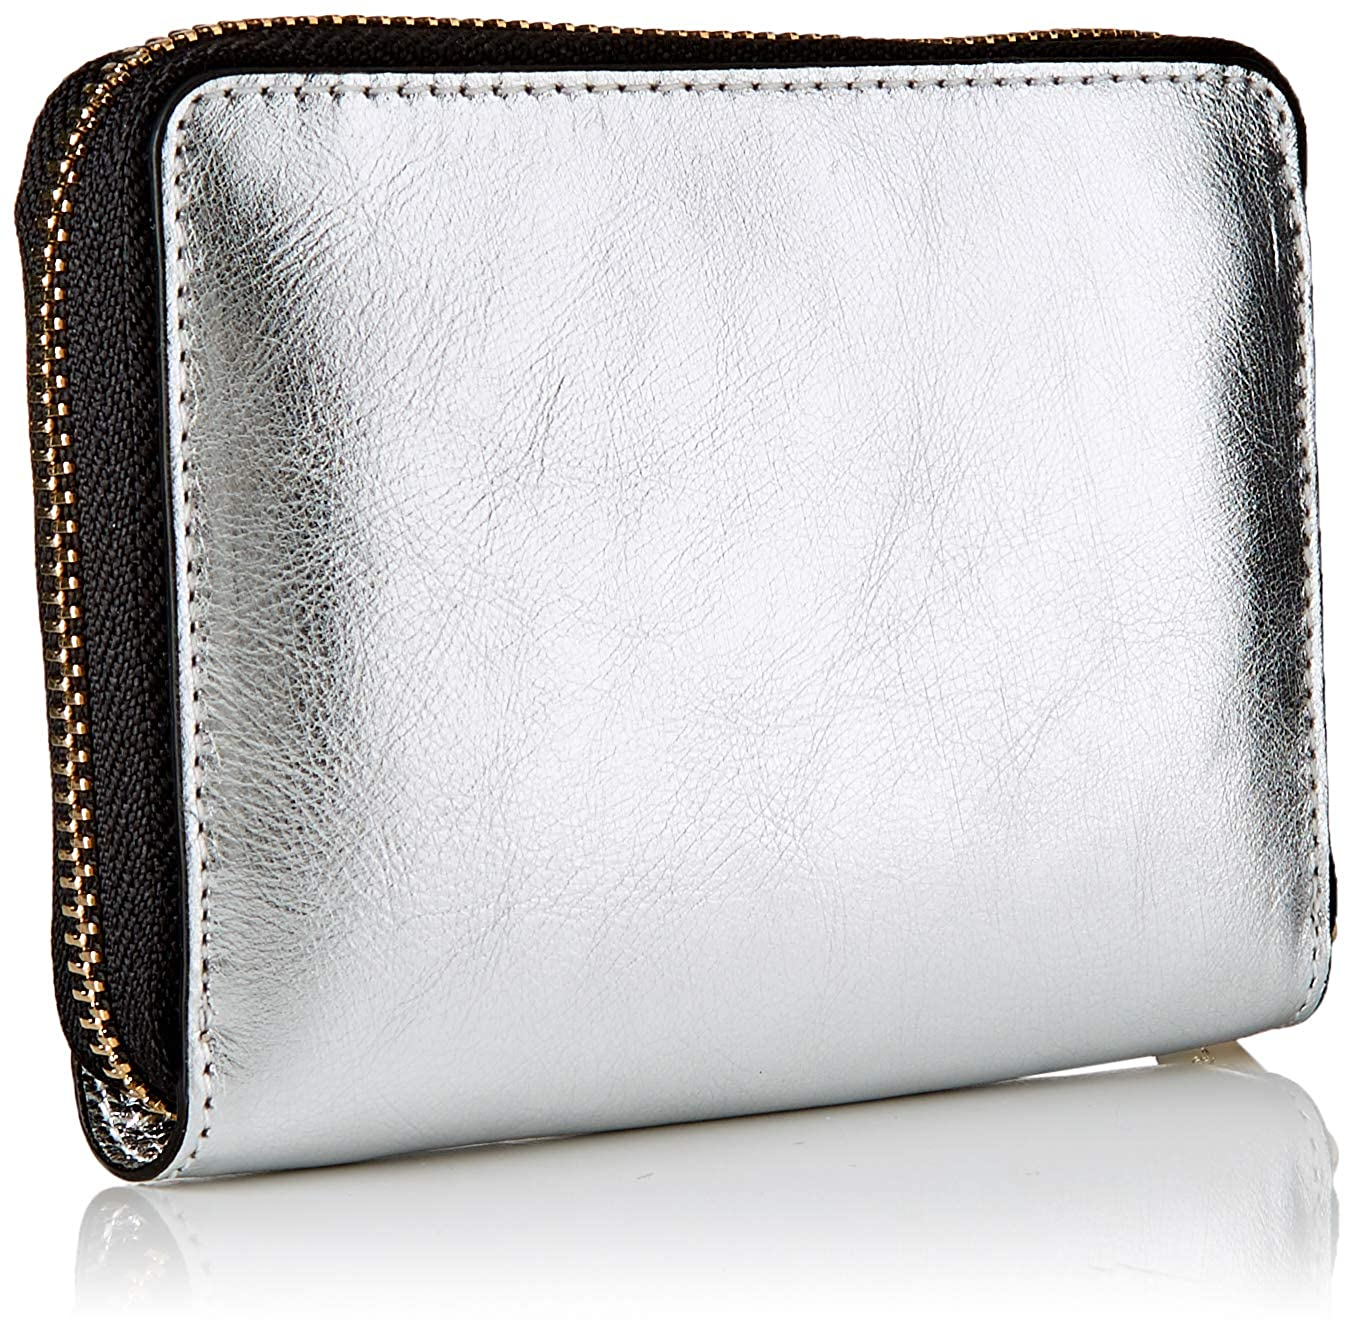 Amazon.com: Tous Womens 995960476 Wallet Silver Silver ...